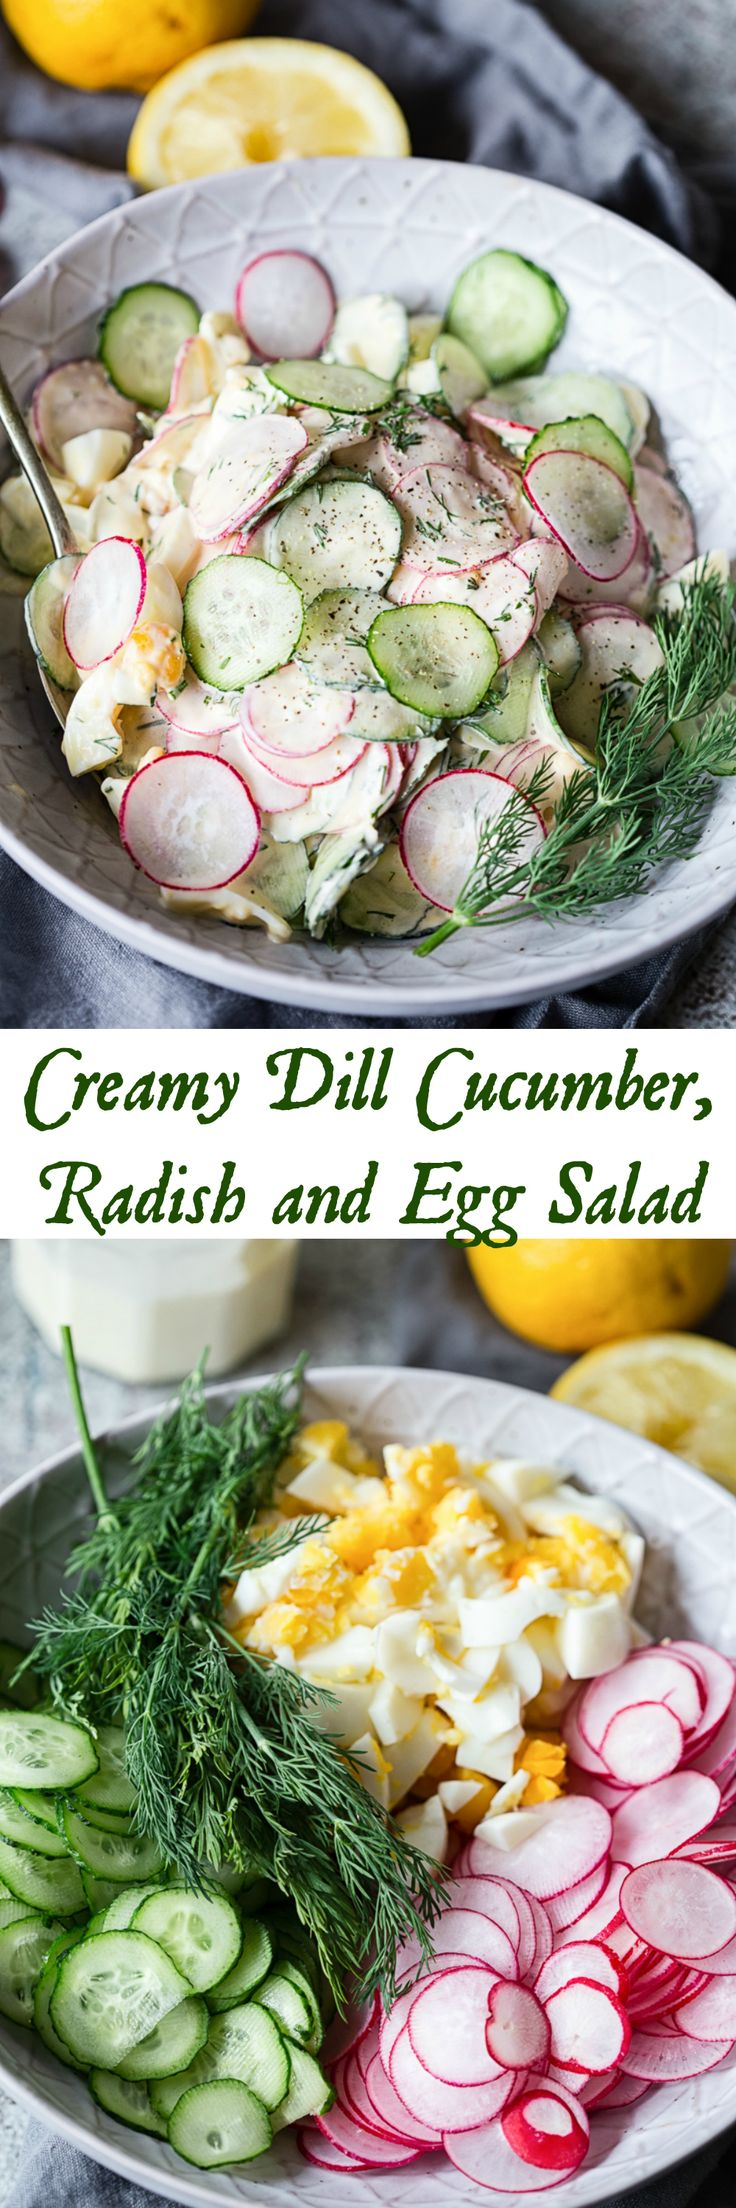 This creamy dill cucumber, radish and egg salad is here to rescue you from your lettuce salad rut! Quick and delicious, this salad is the taste of summer!